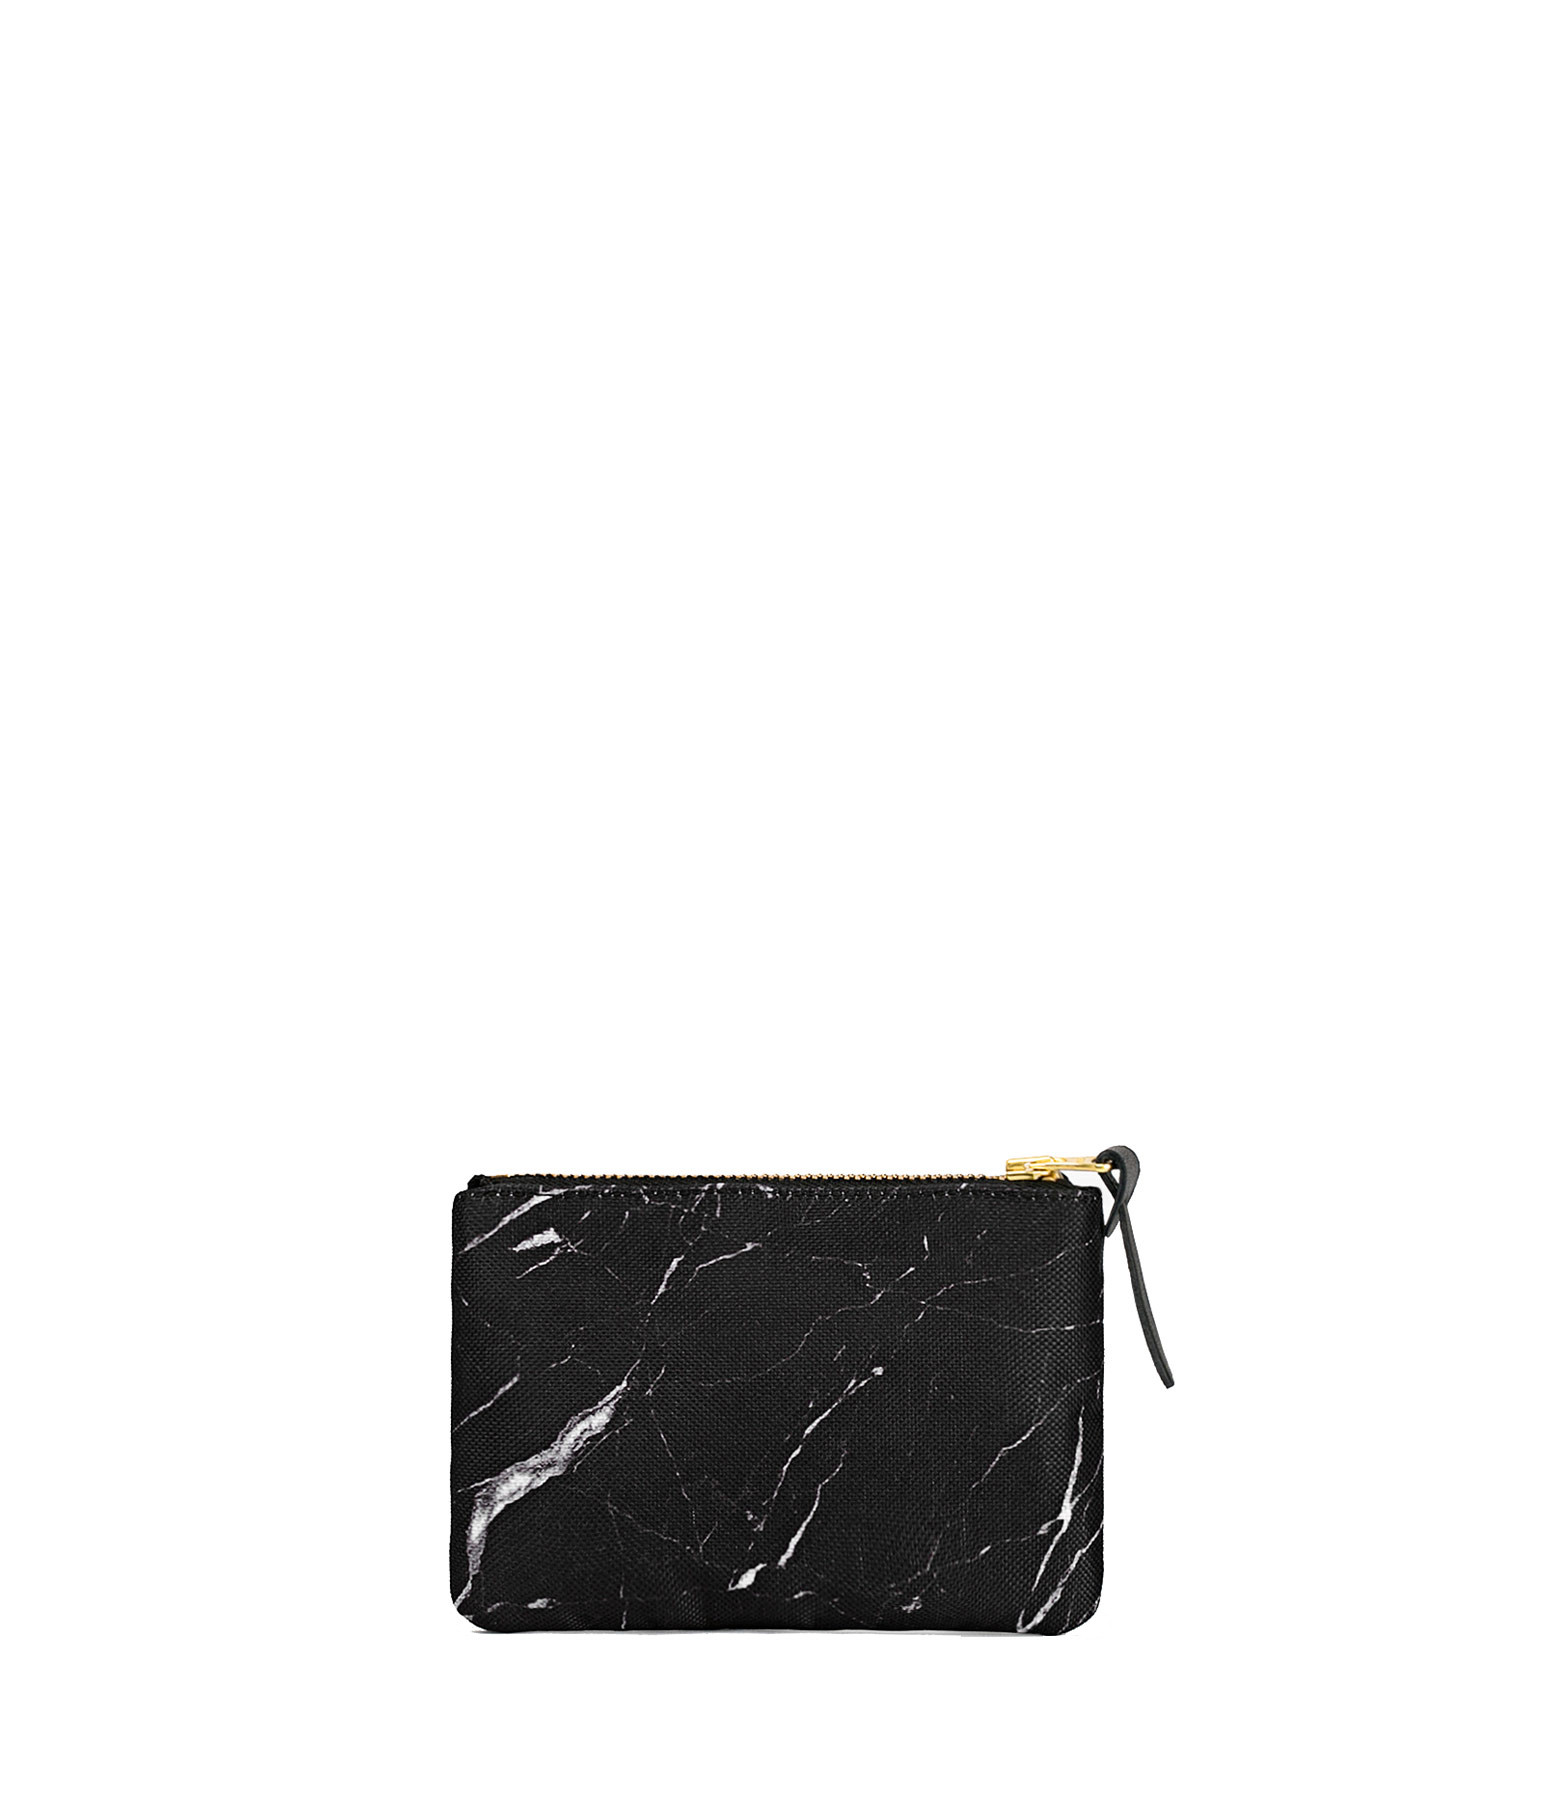 WOUF - Trousse S Black Marble